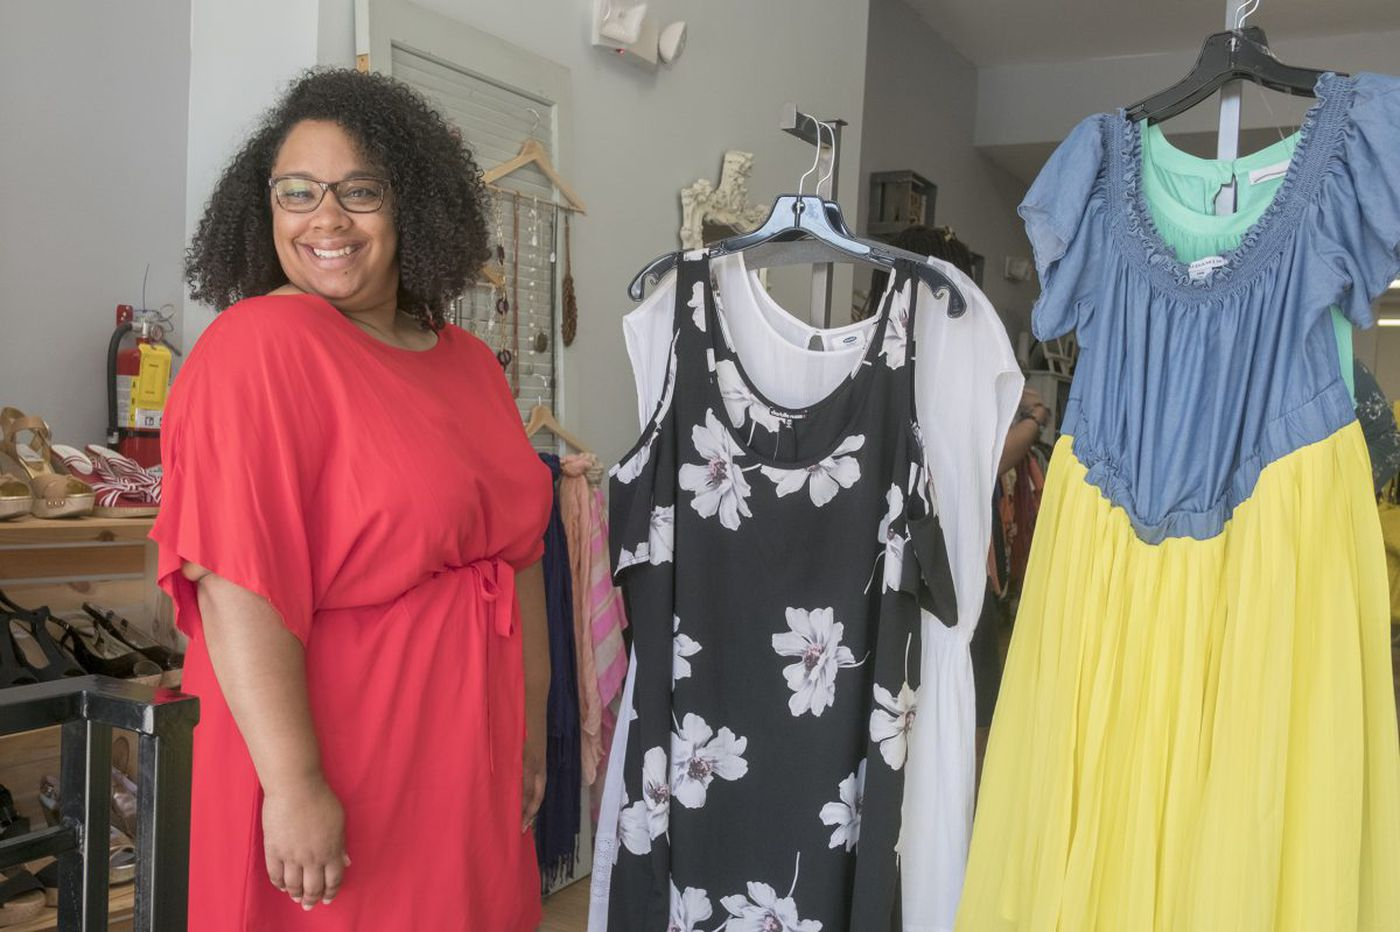 'We are fly, and we are stylish': Plus-size consignment shop celebrates one year